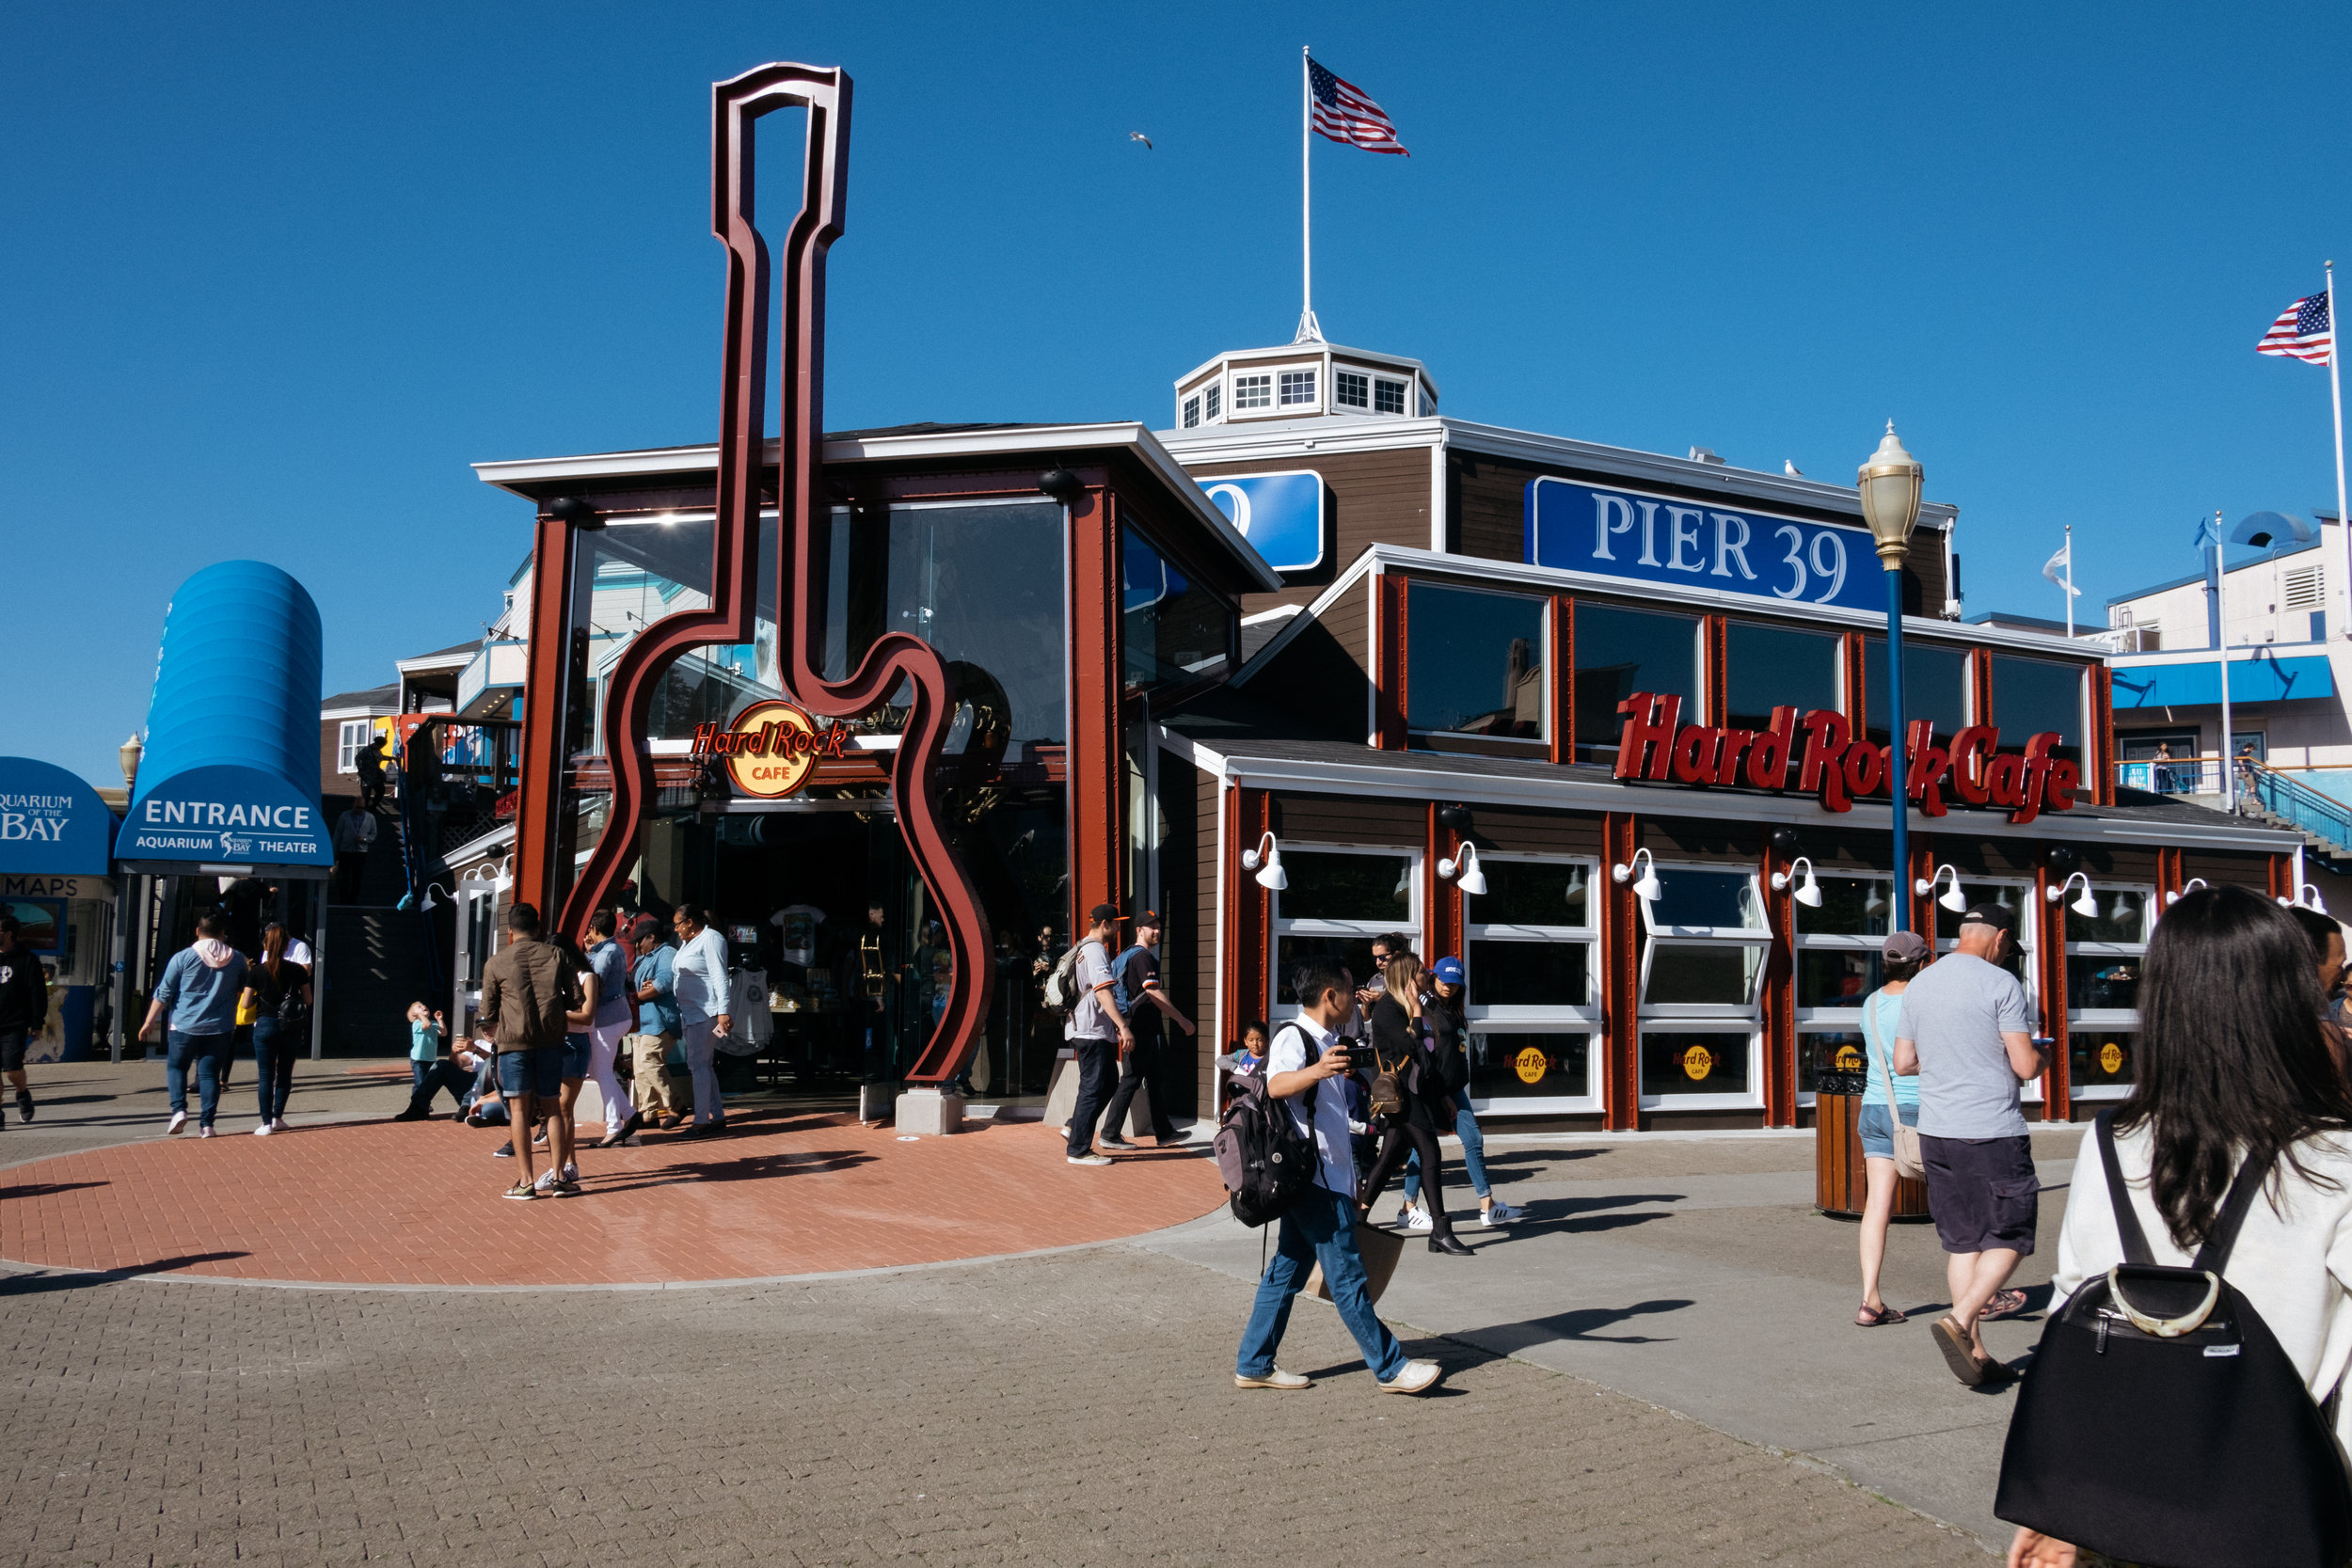 The Hard Rock Cafe at Pier 39 in San Francisco